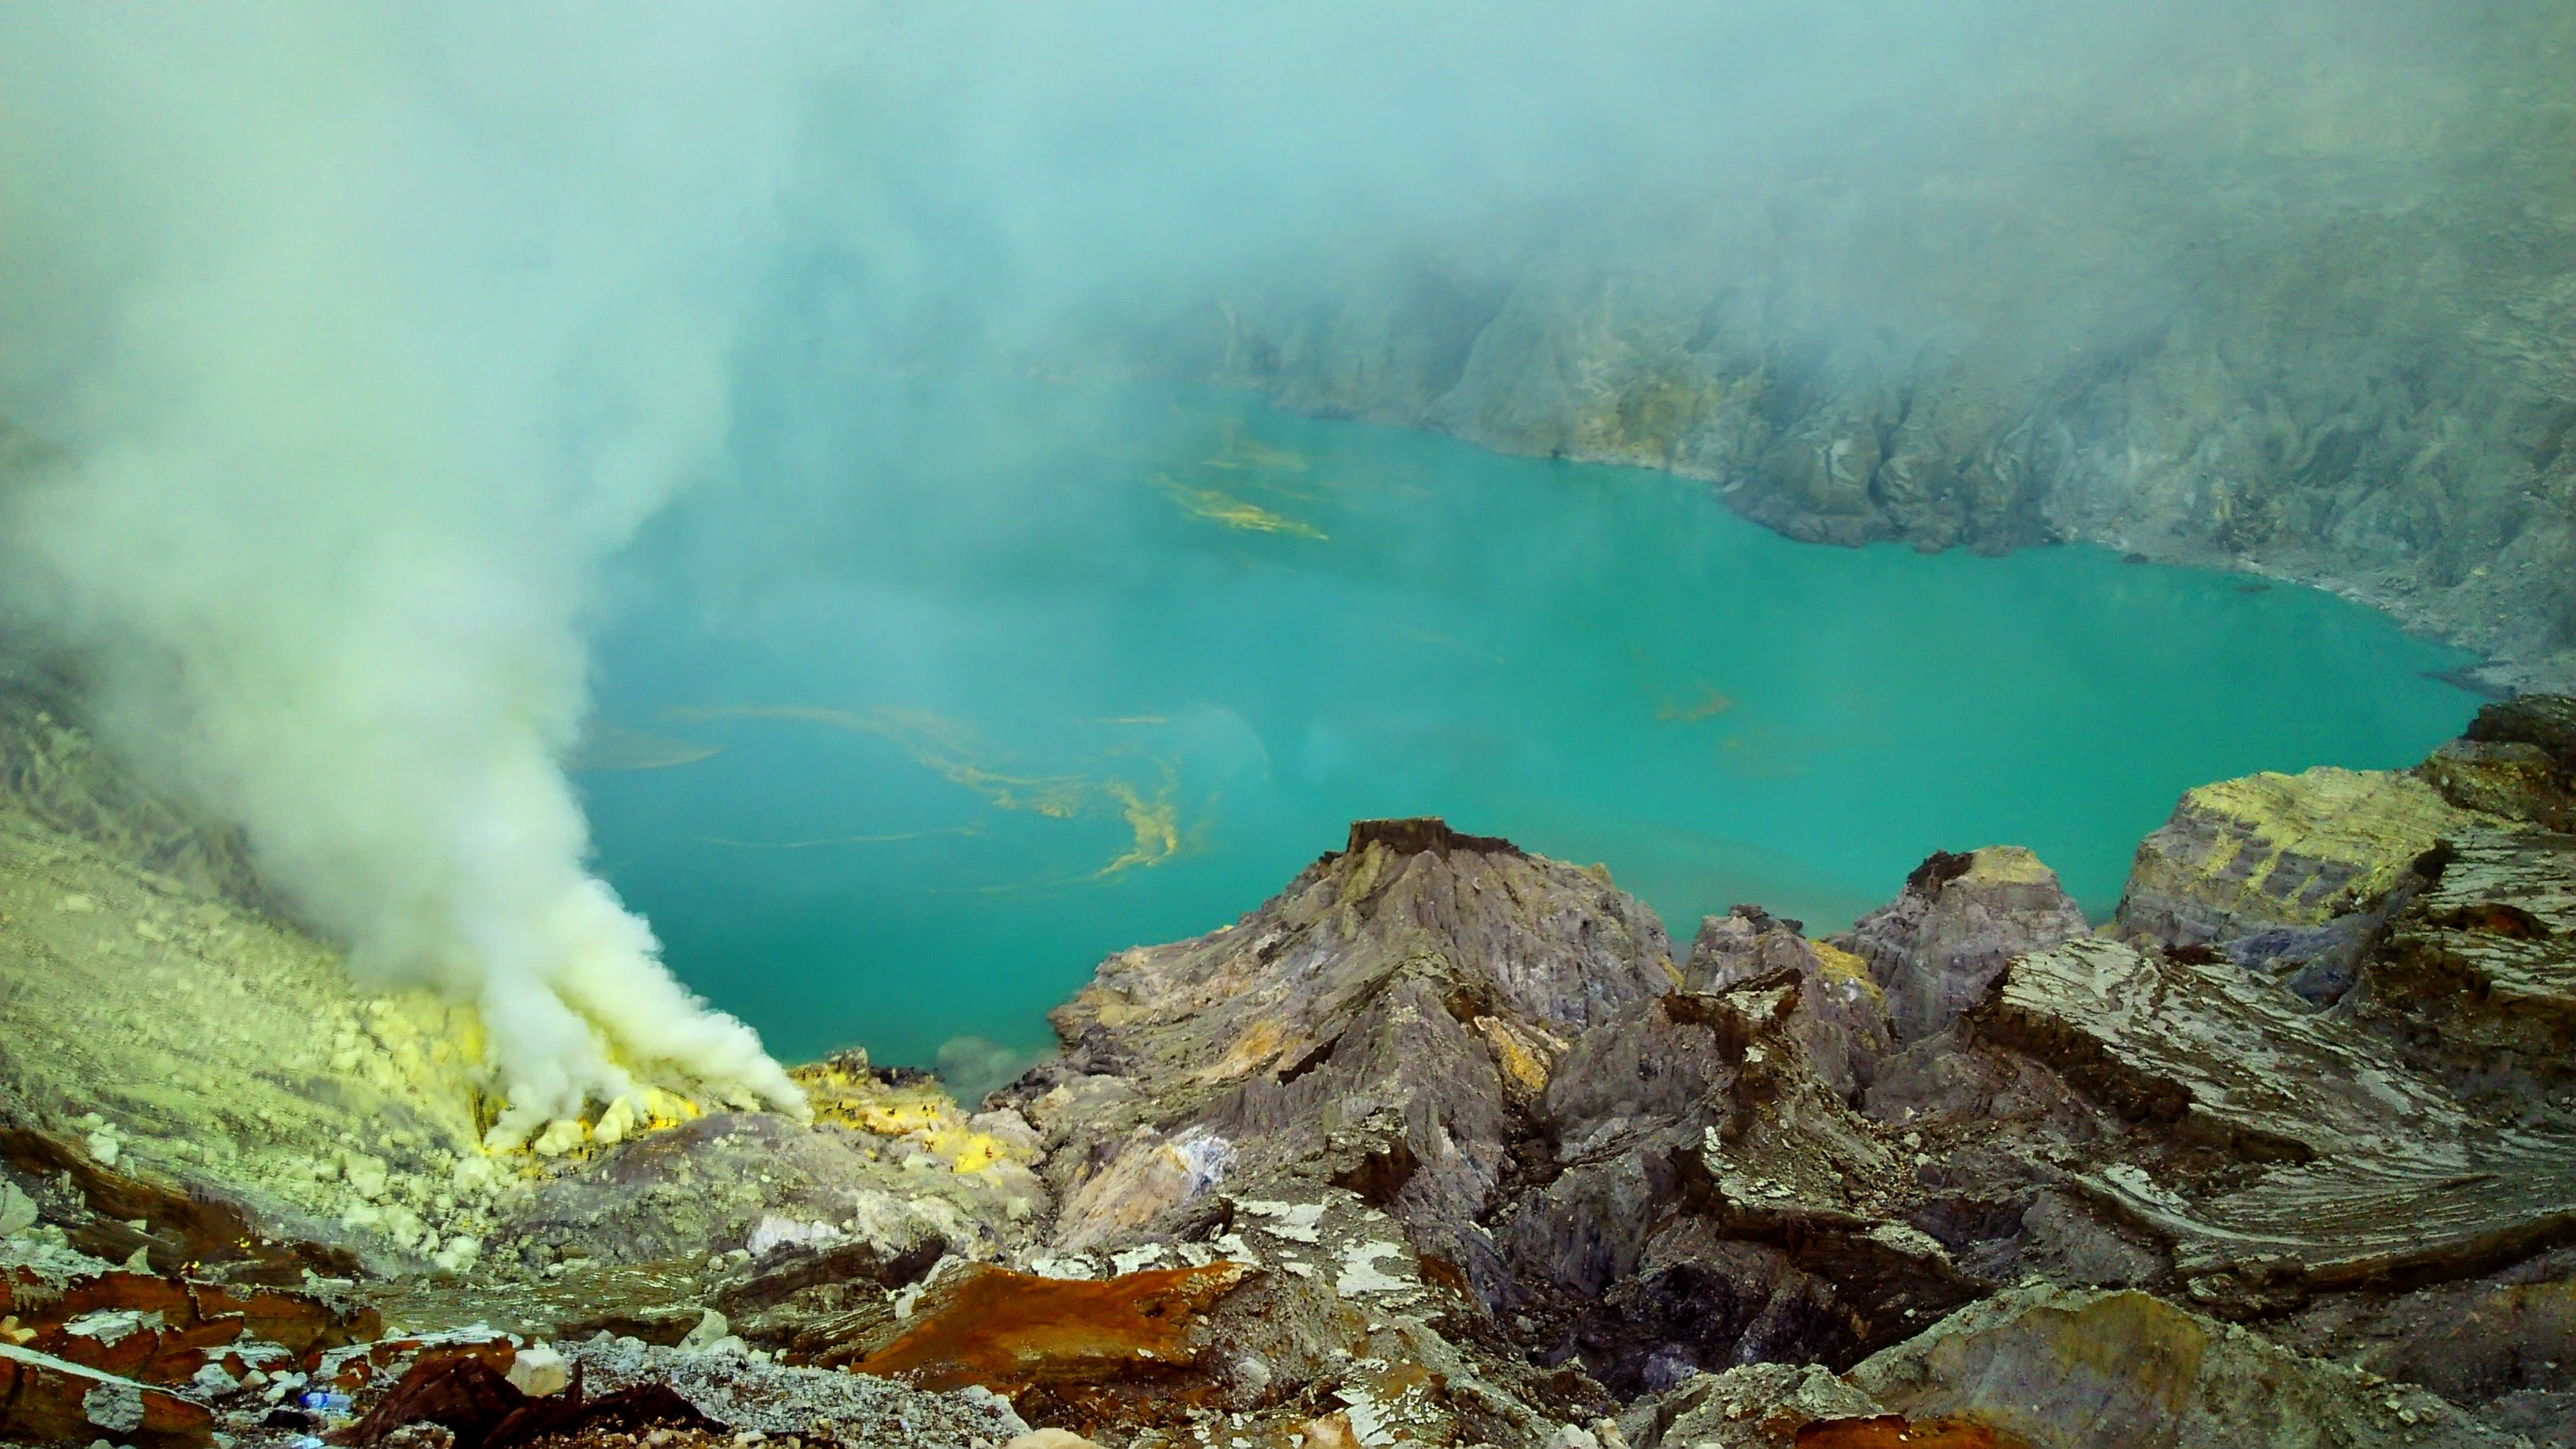 green lake ijen crater, green lake ijen, ijen crater lake, sulfur lake ijen